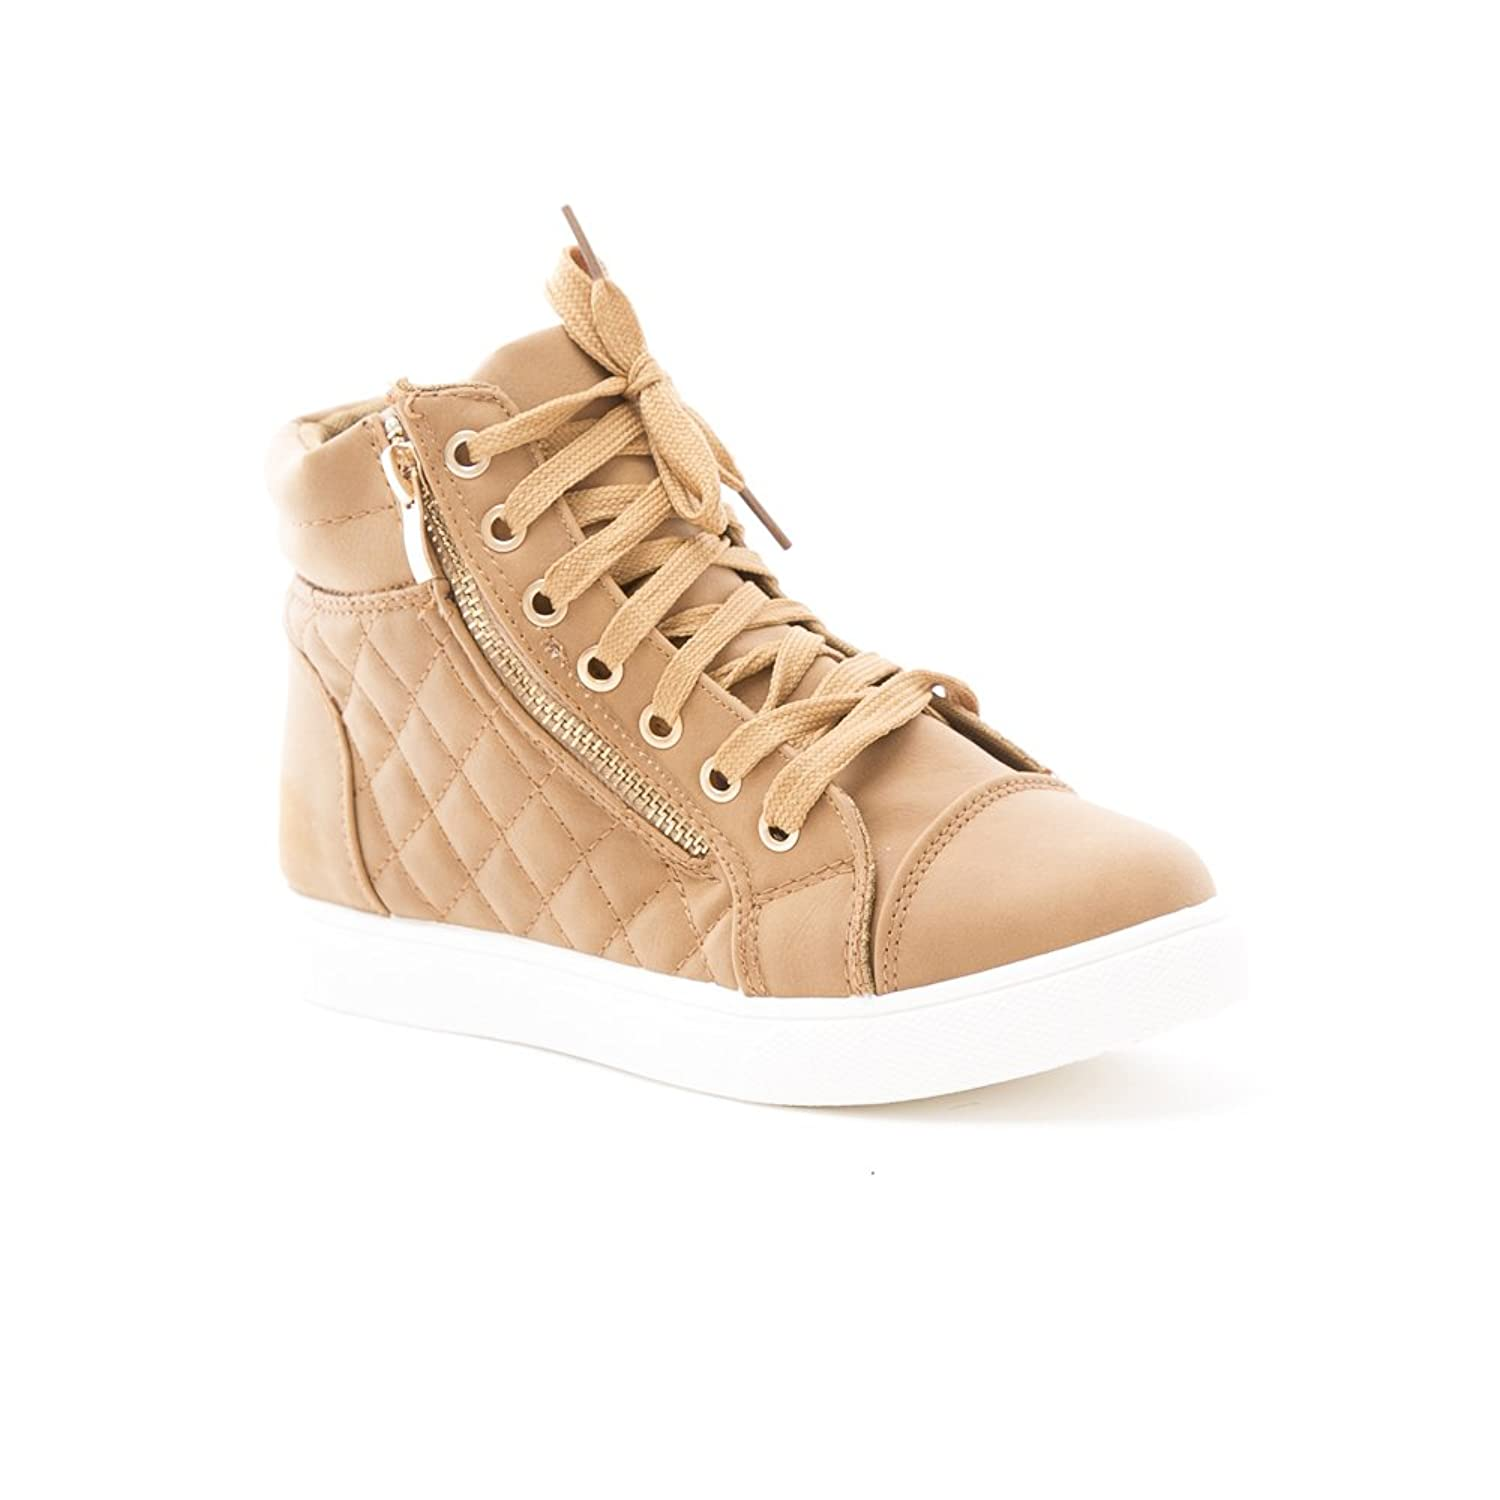 Soho Shoes Women's Leatherette Quilted Zipper Lace Up High Top Sneakers by Soho Shoes